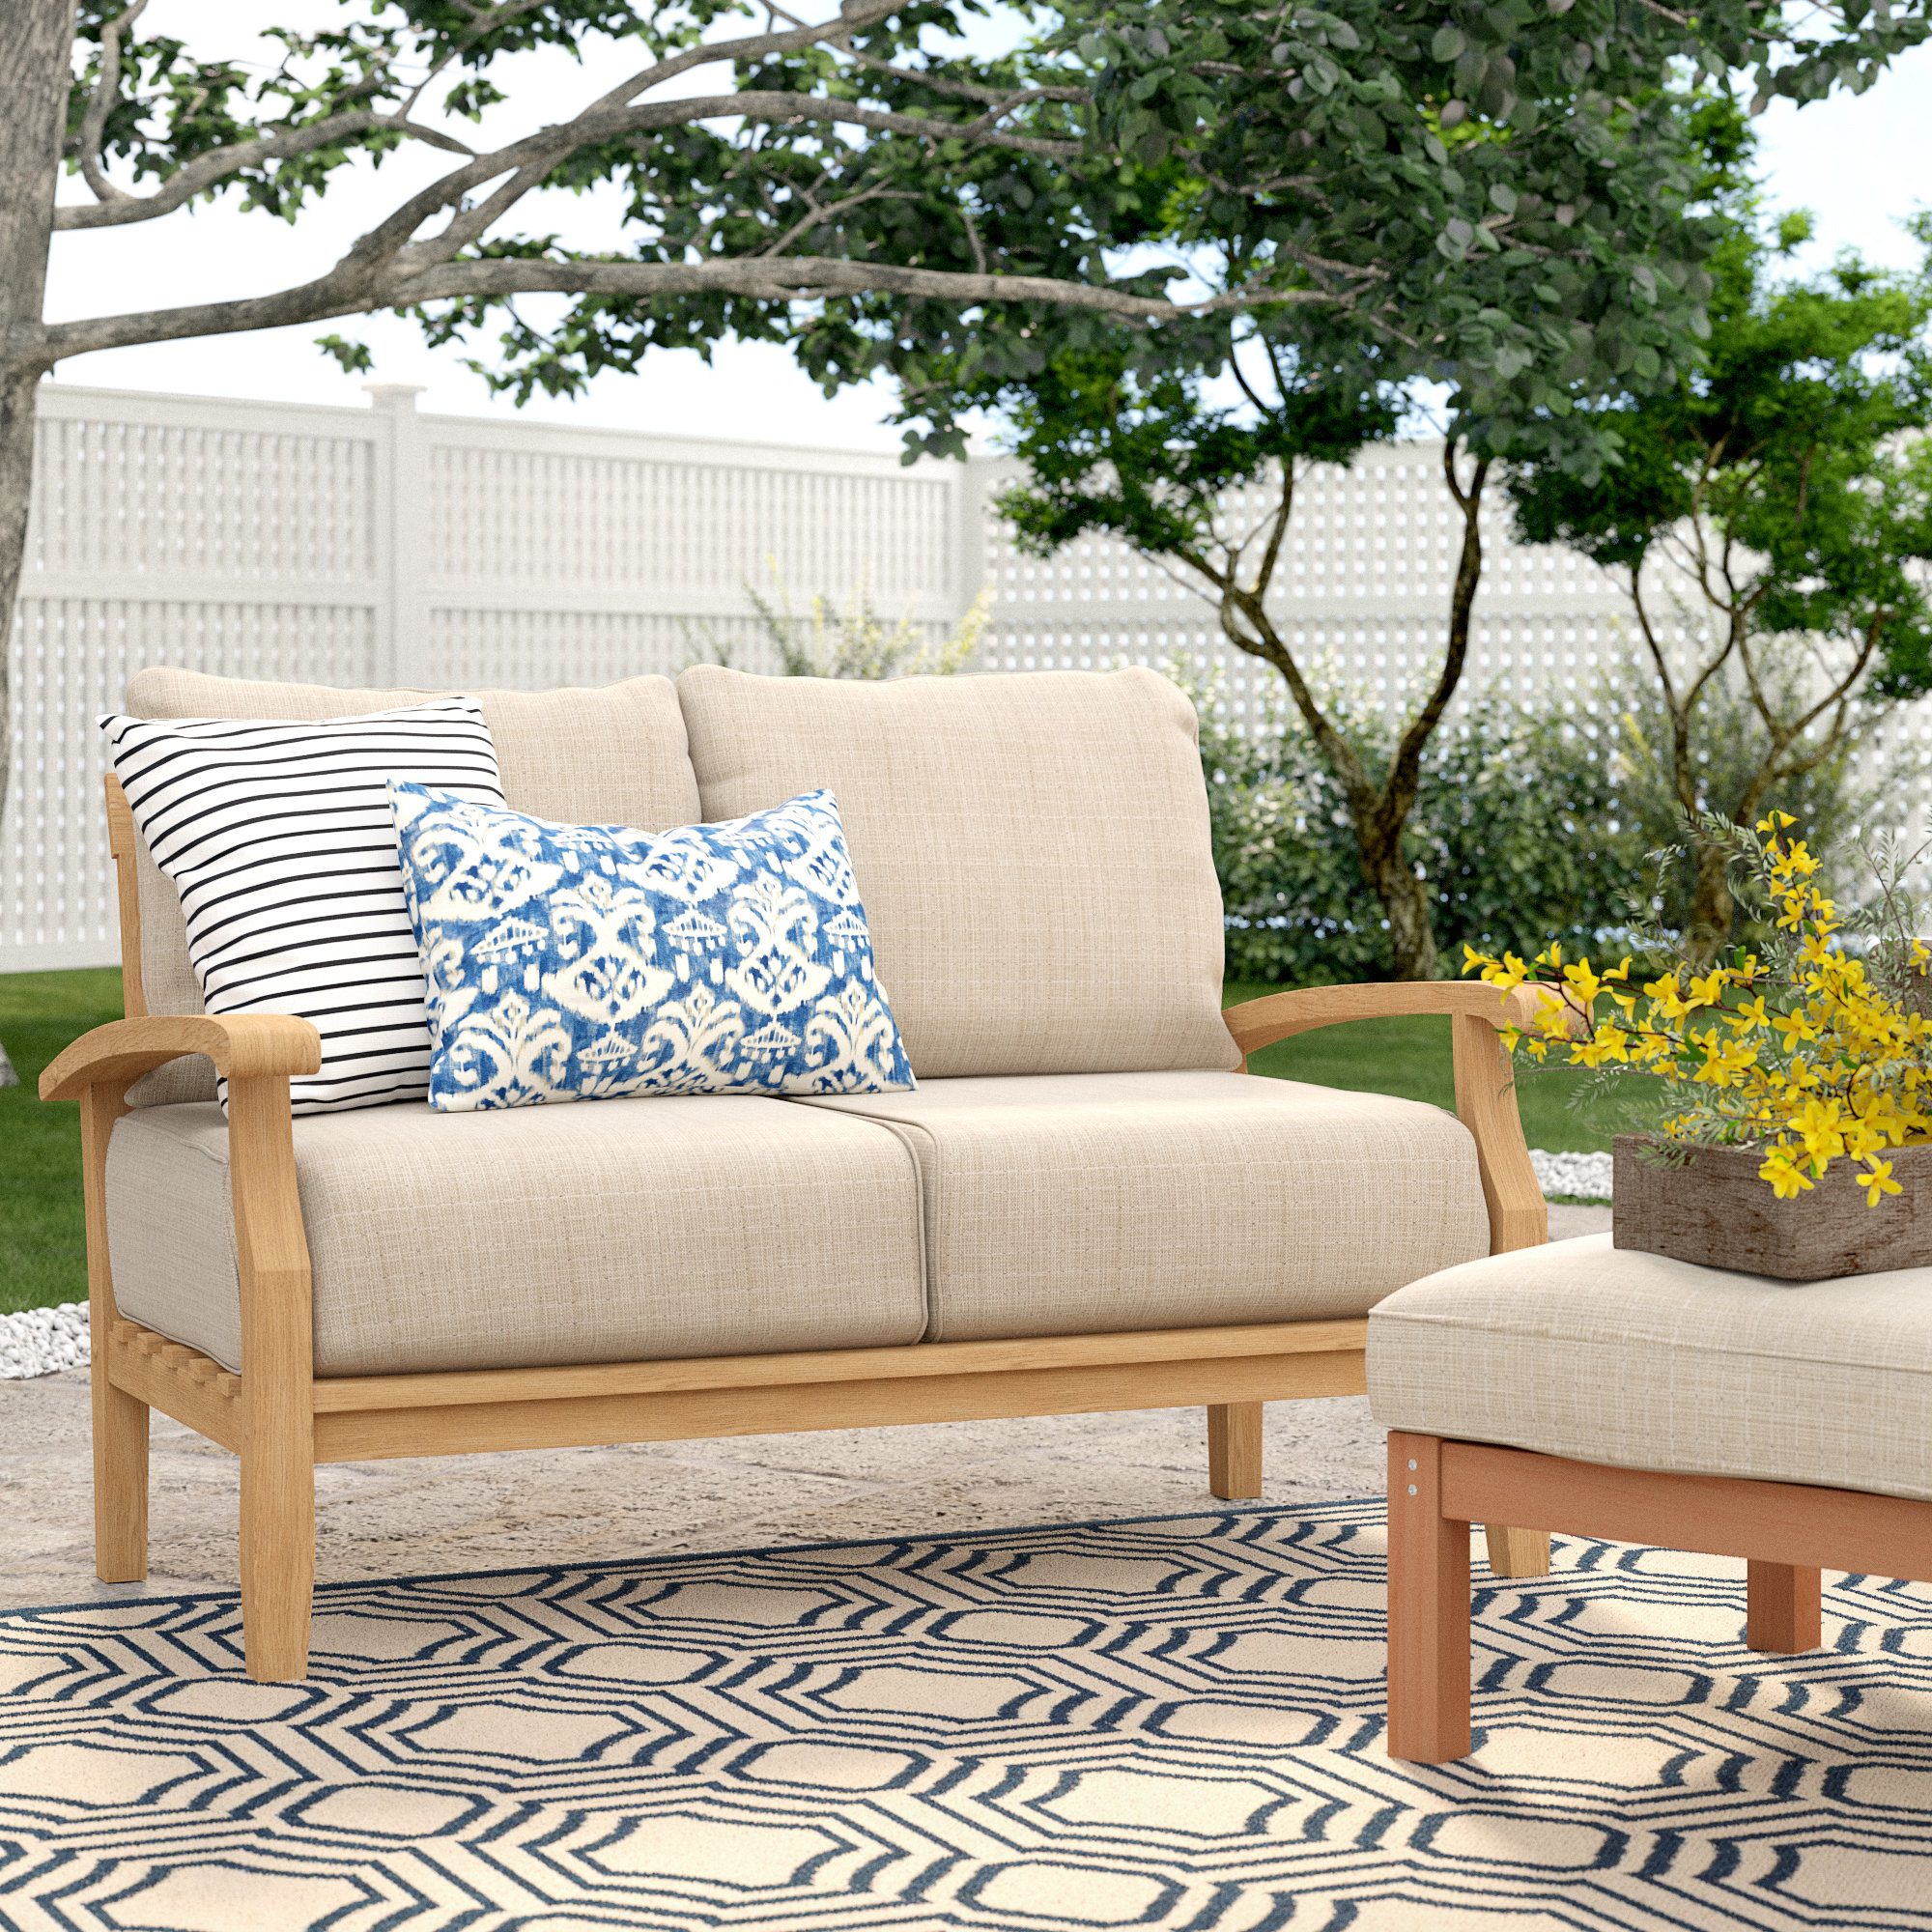 Most Up To Date Alburg Loveseats With Cushions Intended For Summerton Teak Loveseat With Cushions (View 4 of 25)